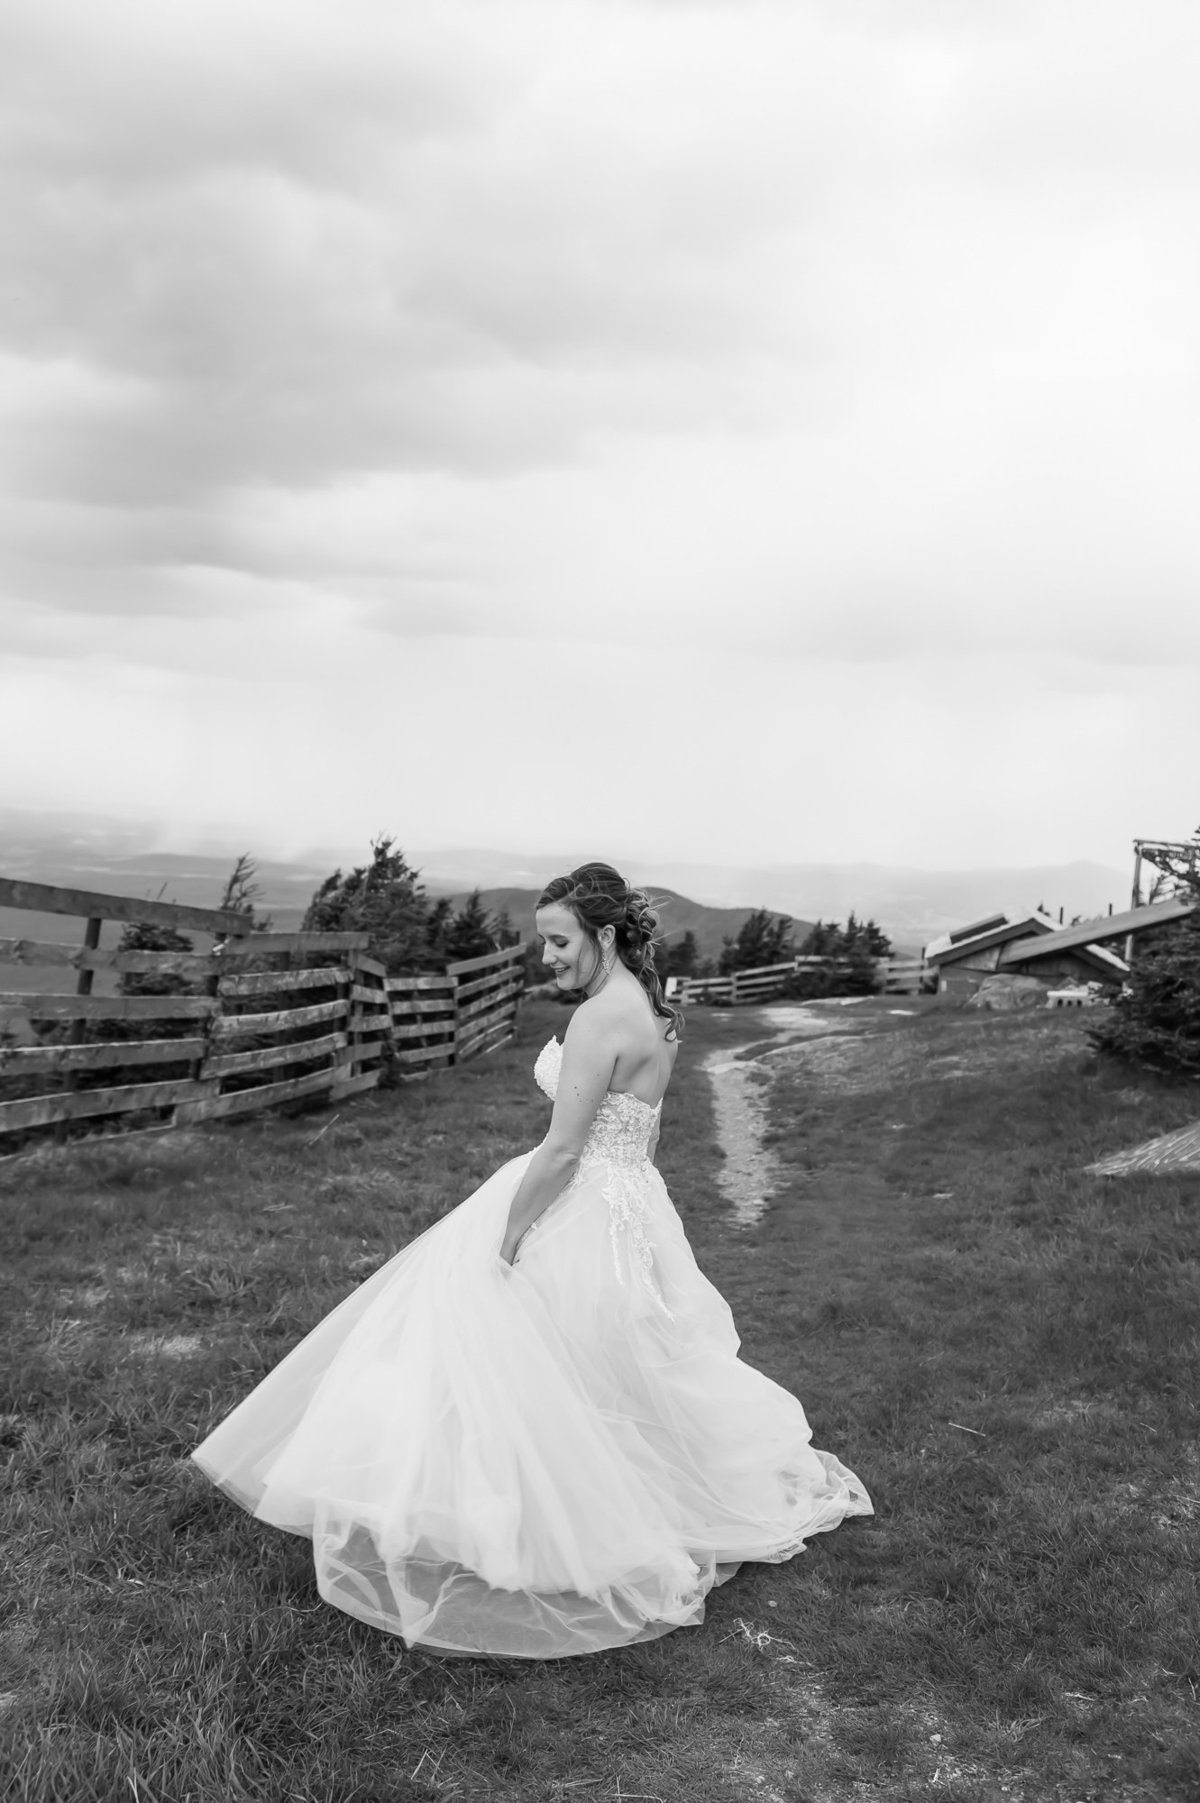 black and white bridal portrait at Jay Peak Resort at Elevation 4000 by Kat Mooney Photography